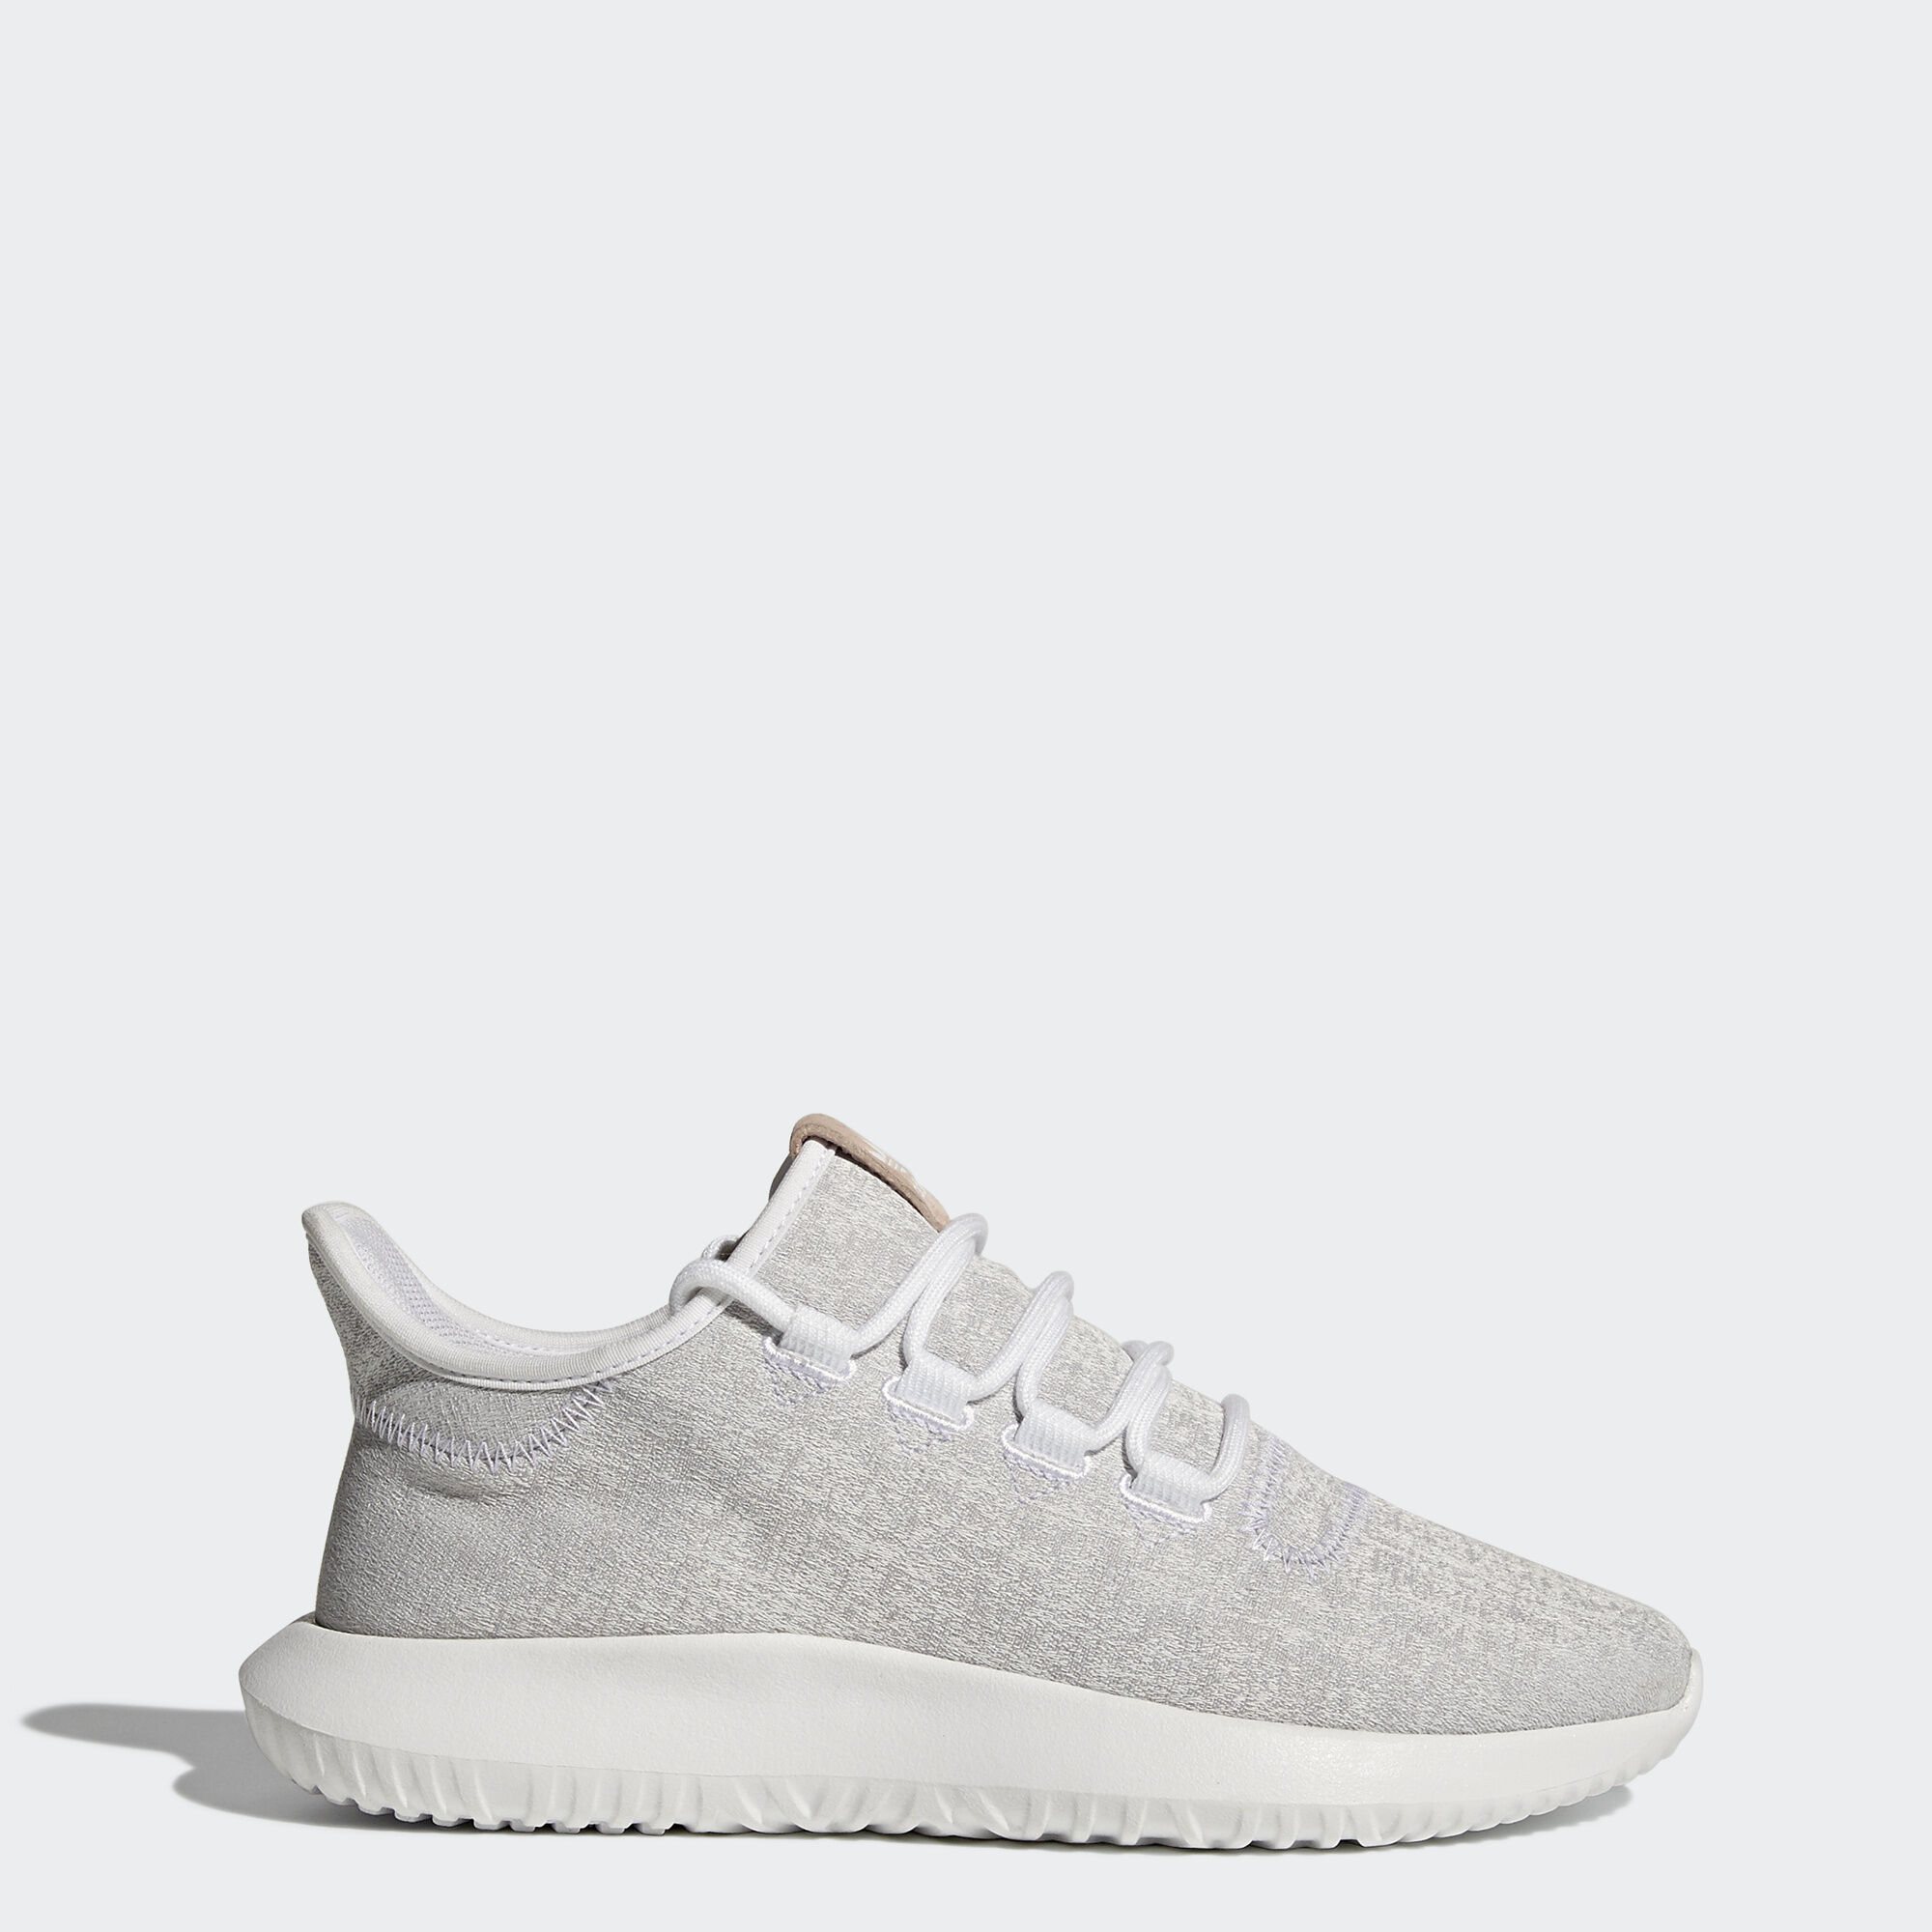 adidas Tubular Shadow Knit (Big Kids) : Footwear: YCMC